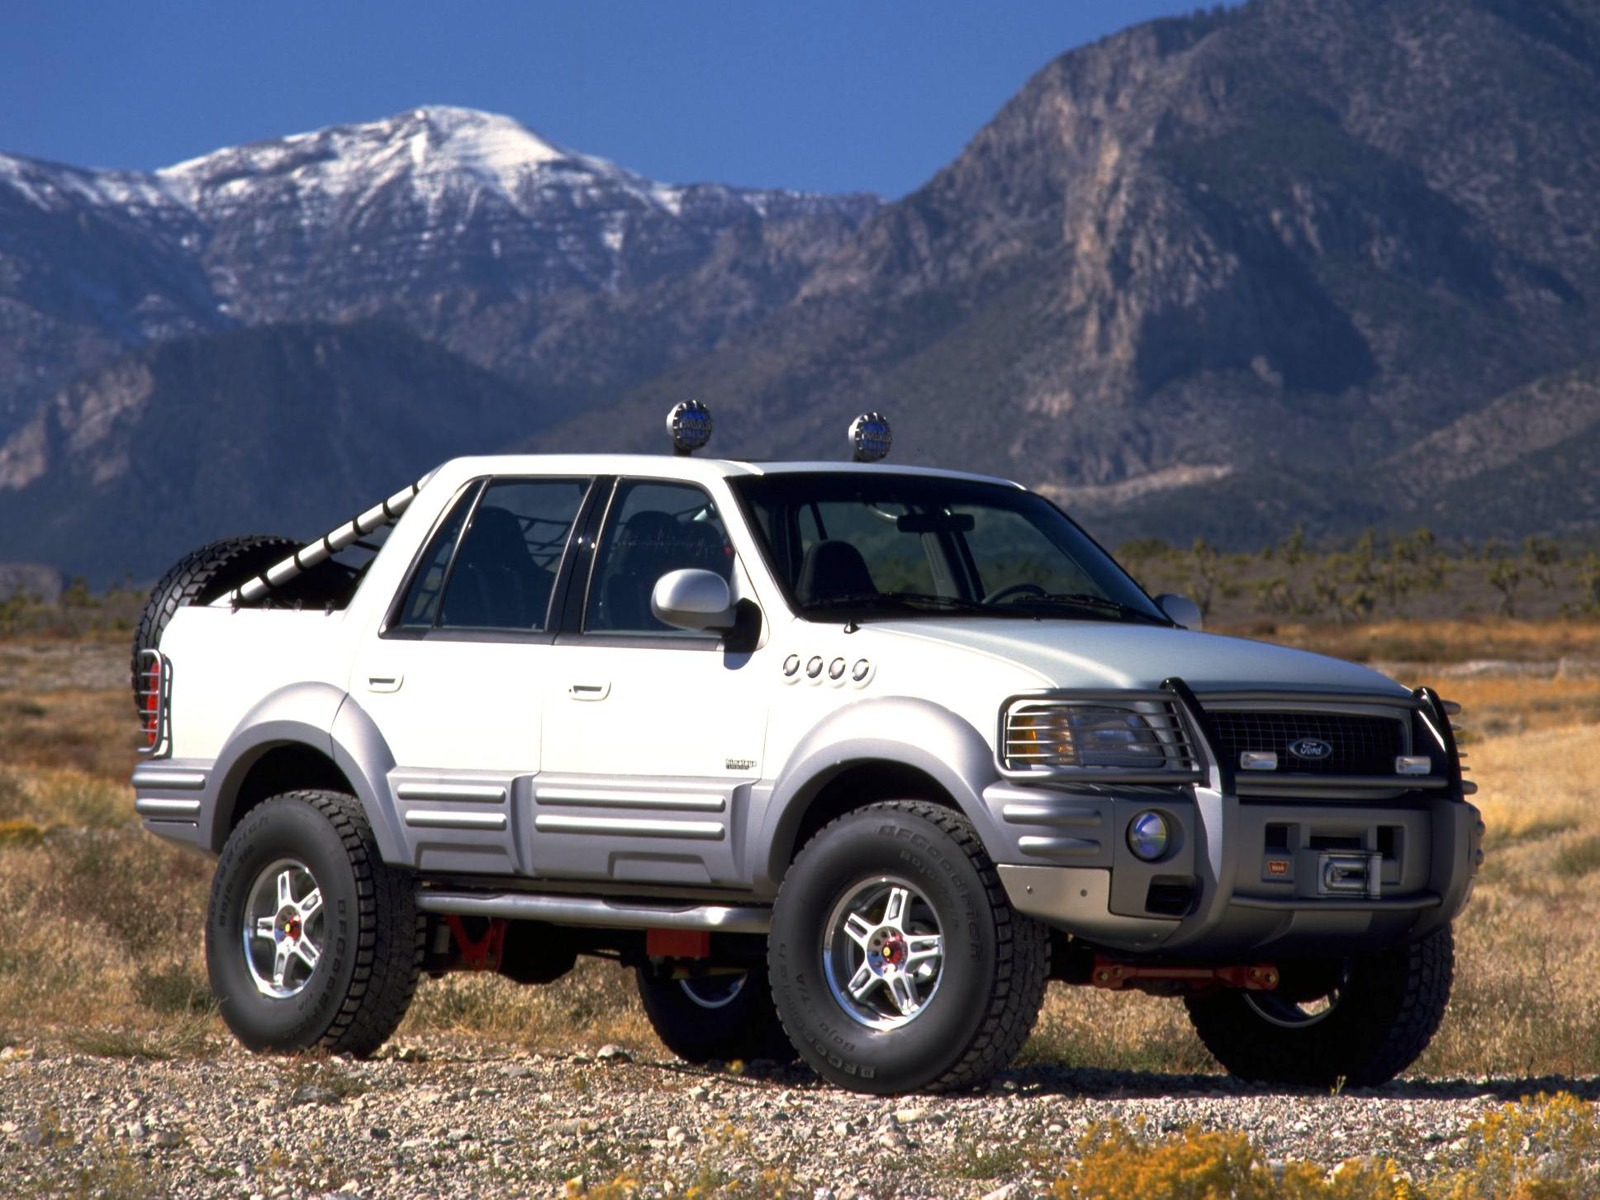 Ford_expedition_himalaya_concept_ Ford_expedition_himalaya_concept_ Ford_expedition_himalaya_concept_ Ford_expedition_himalaya_concept_